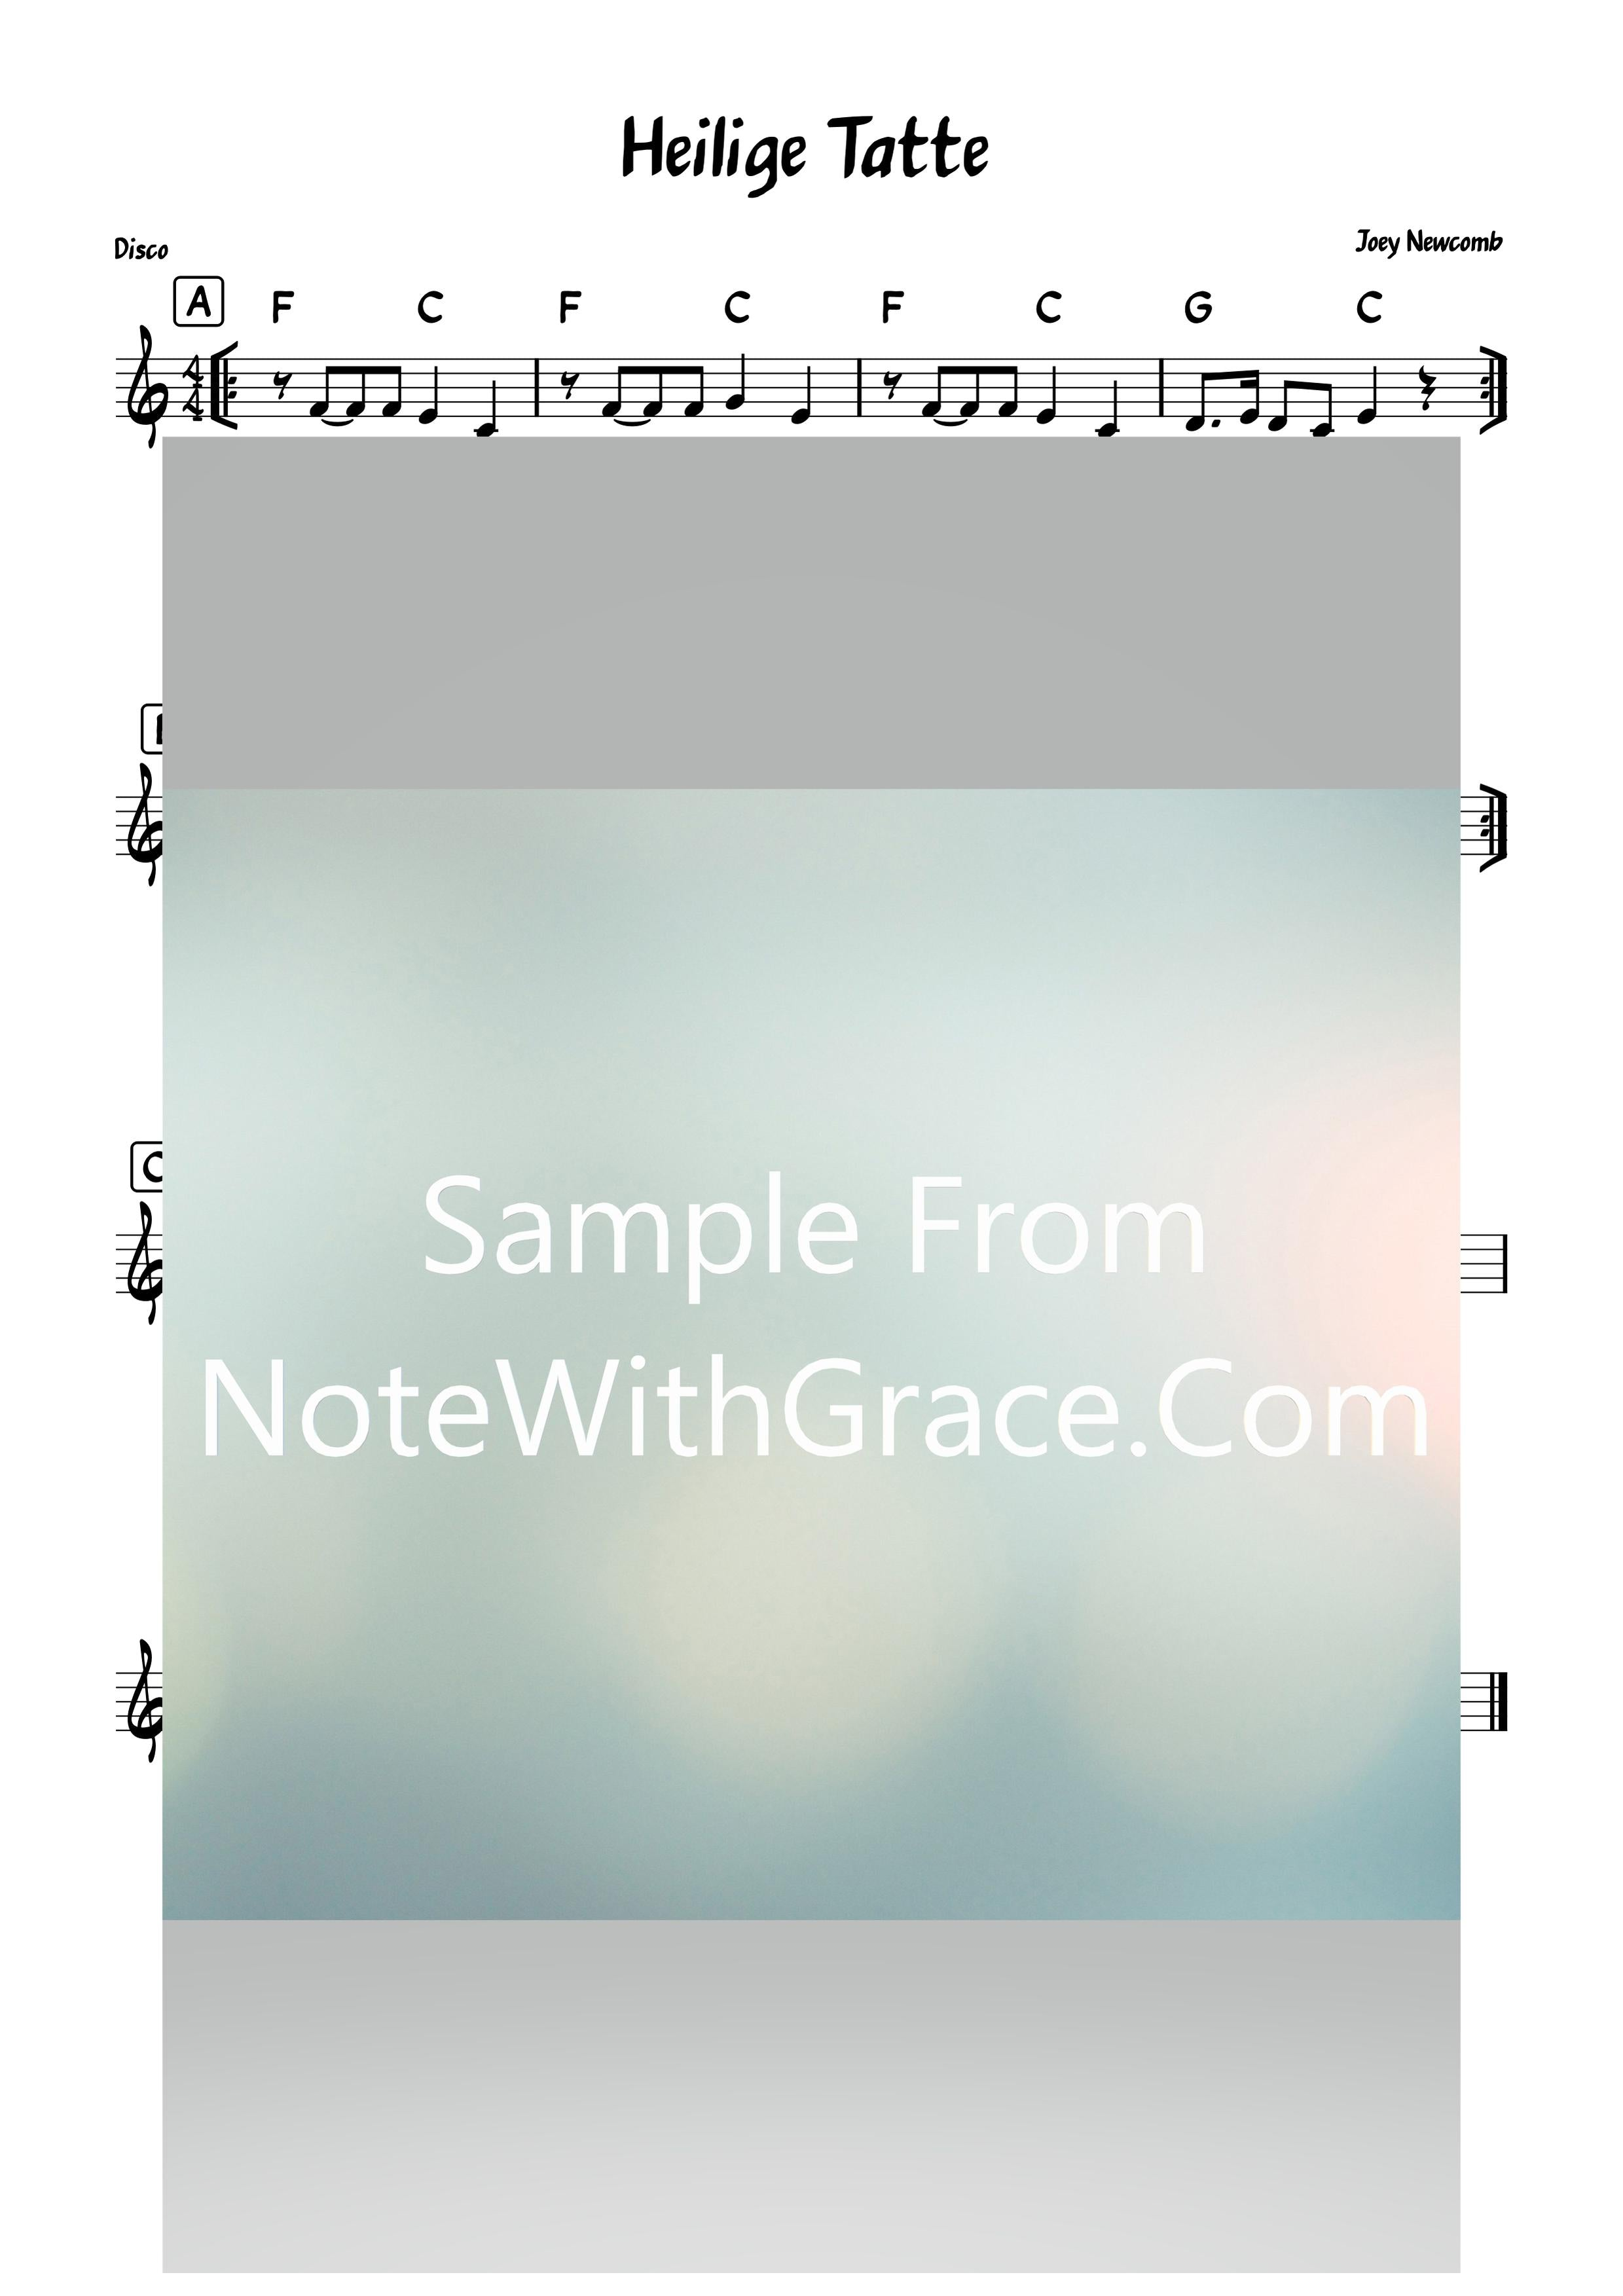 Heilige Tatte - אל אבי Lead Sheet (Joey Newcomb) Album How Aw Ya Reb Yid? 2020-Sheet music-NoteWithGrace.com